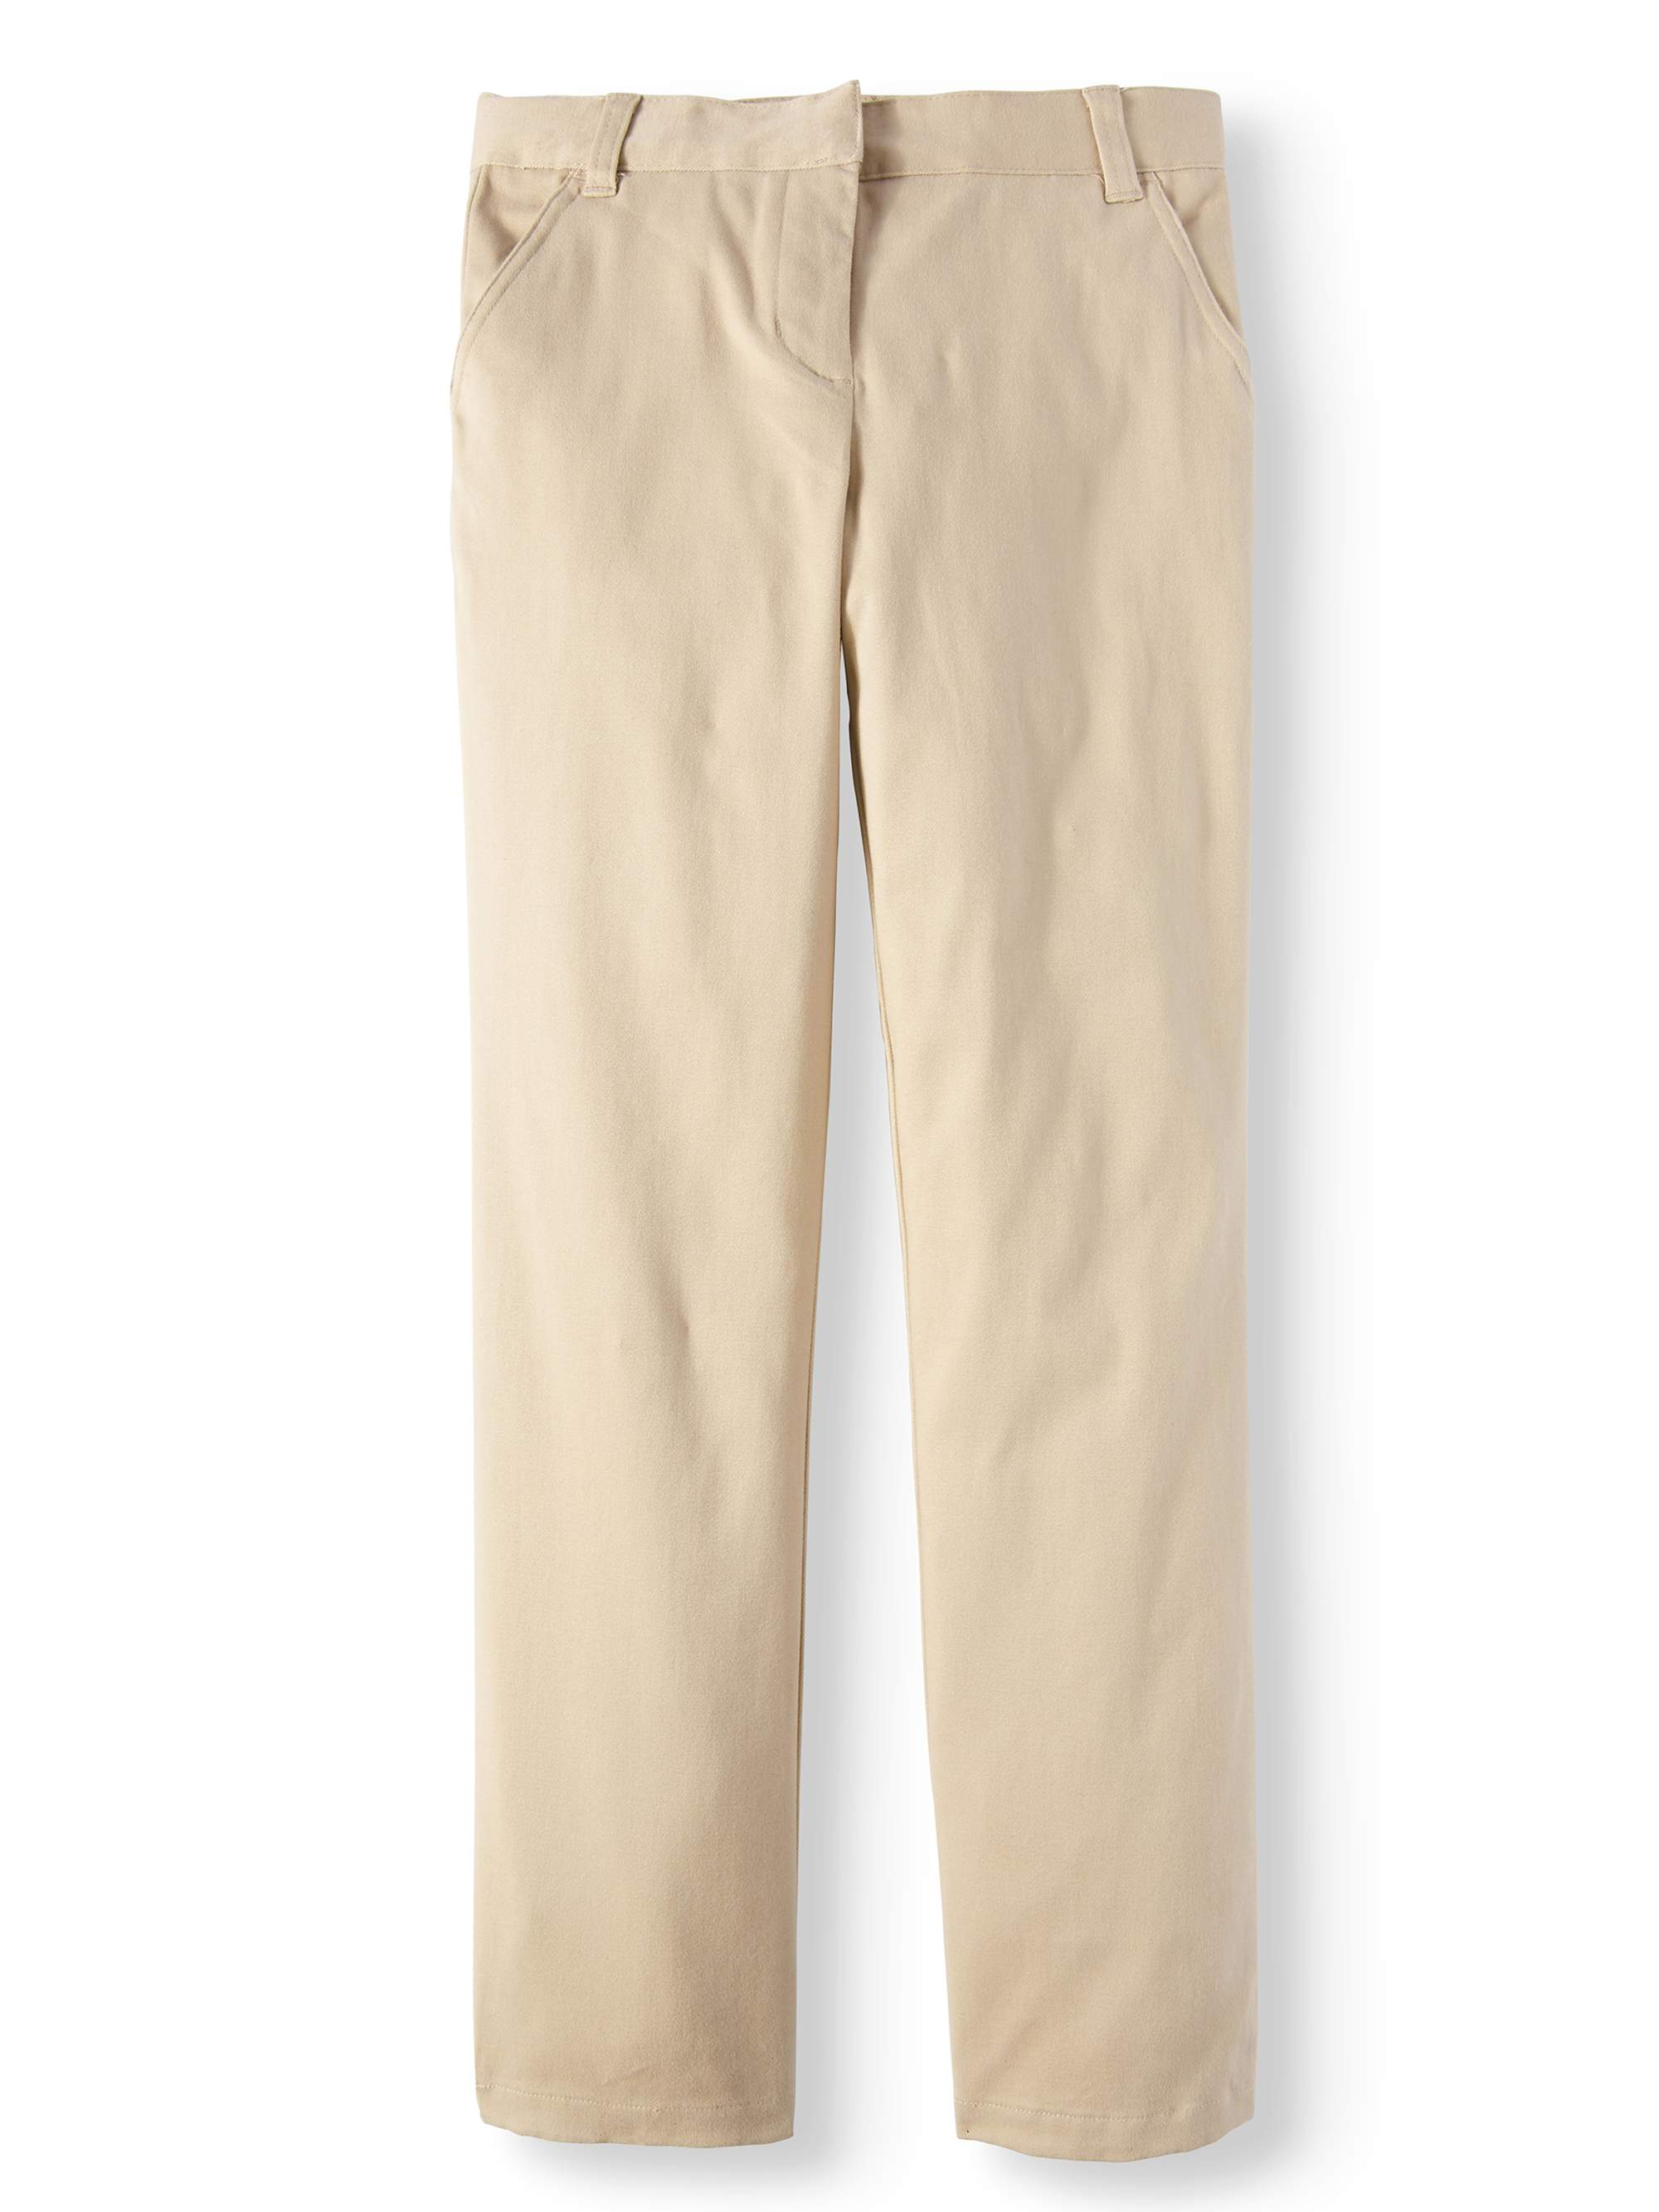 Girls' School Uniforms, Flat Front Pant